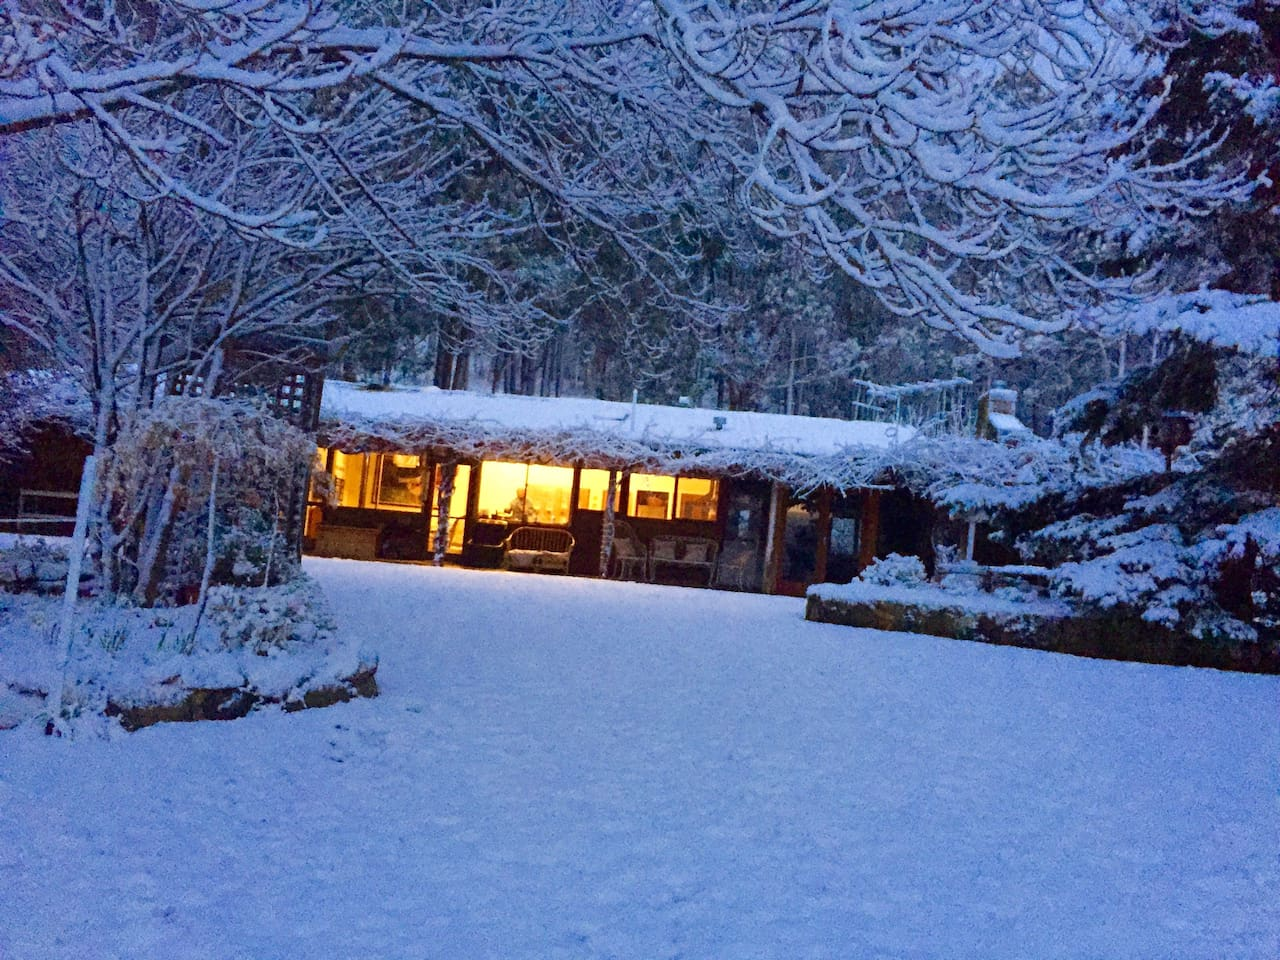 So cozy inside .. this is the farmhouse in winter